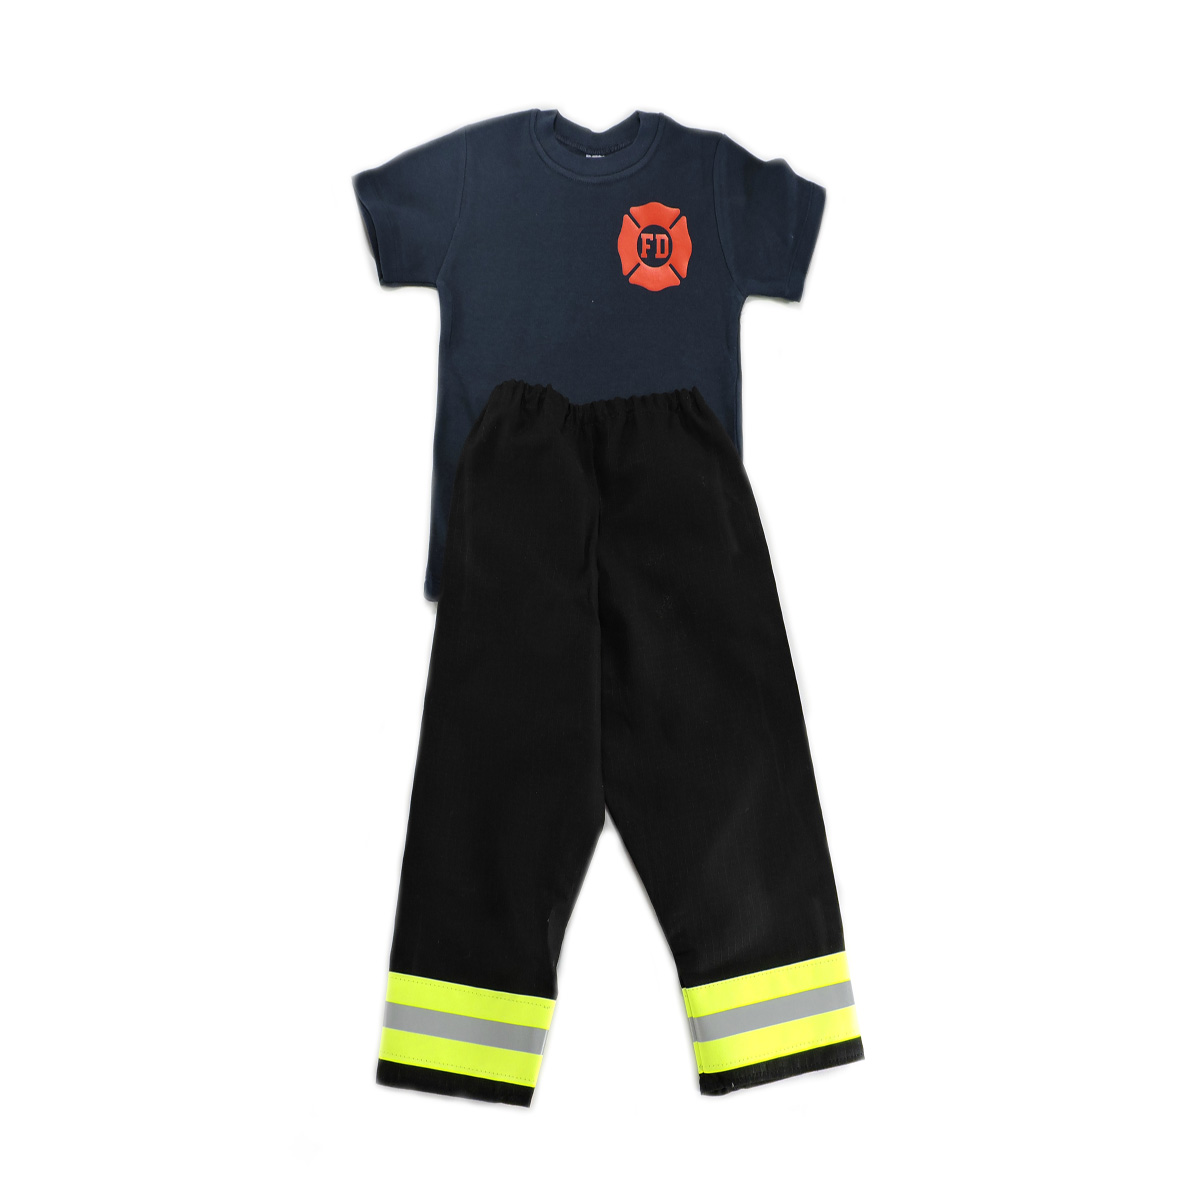 black toddler firefighter outfit